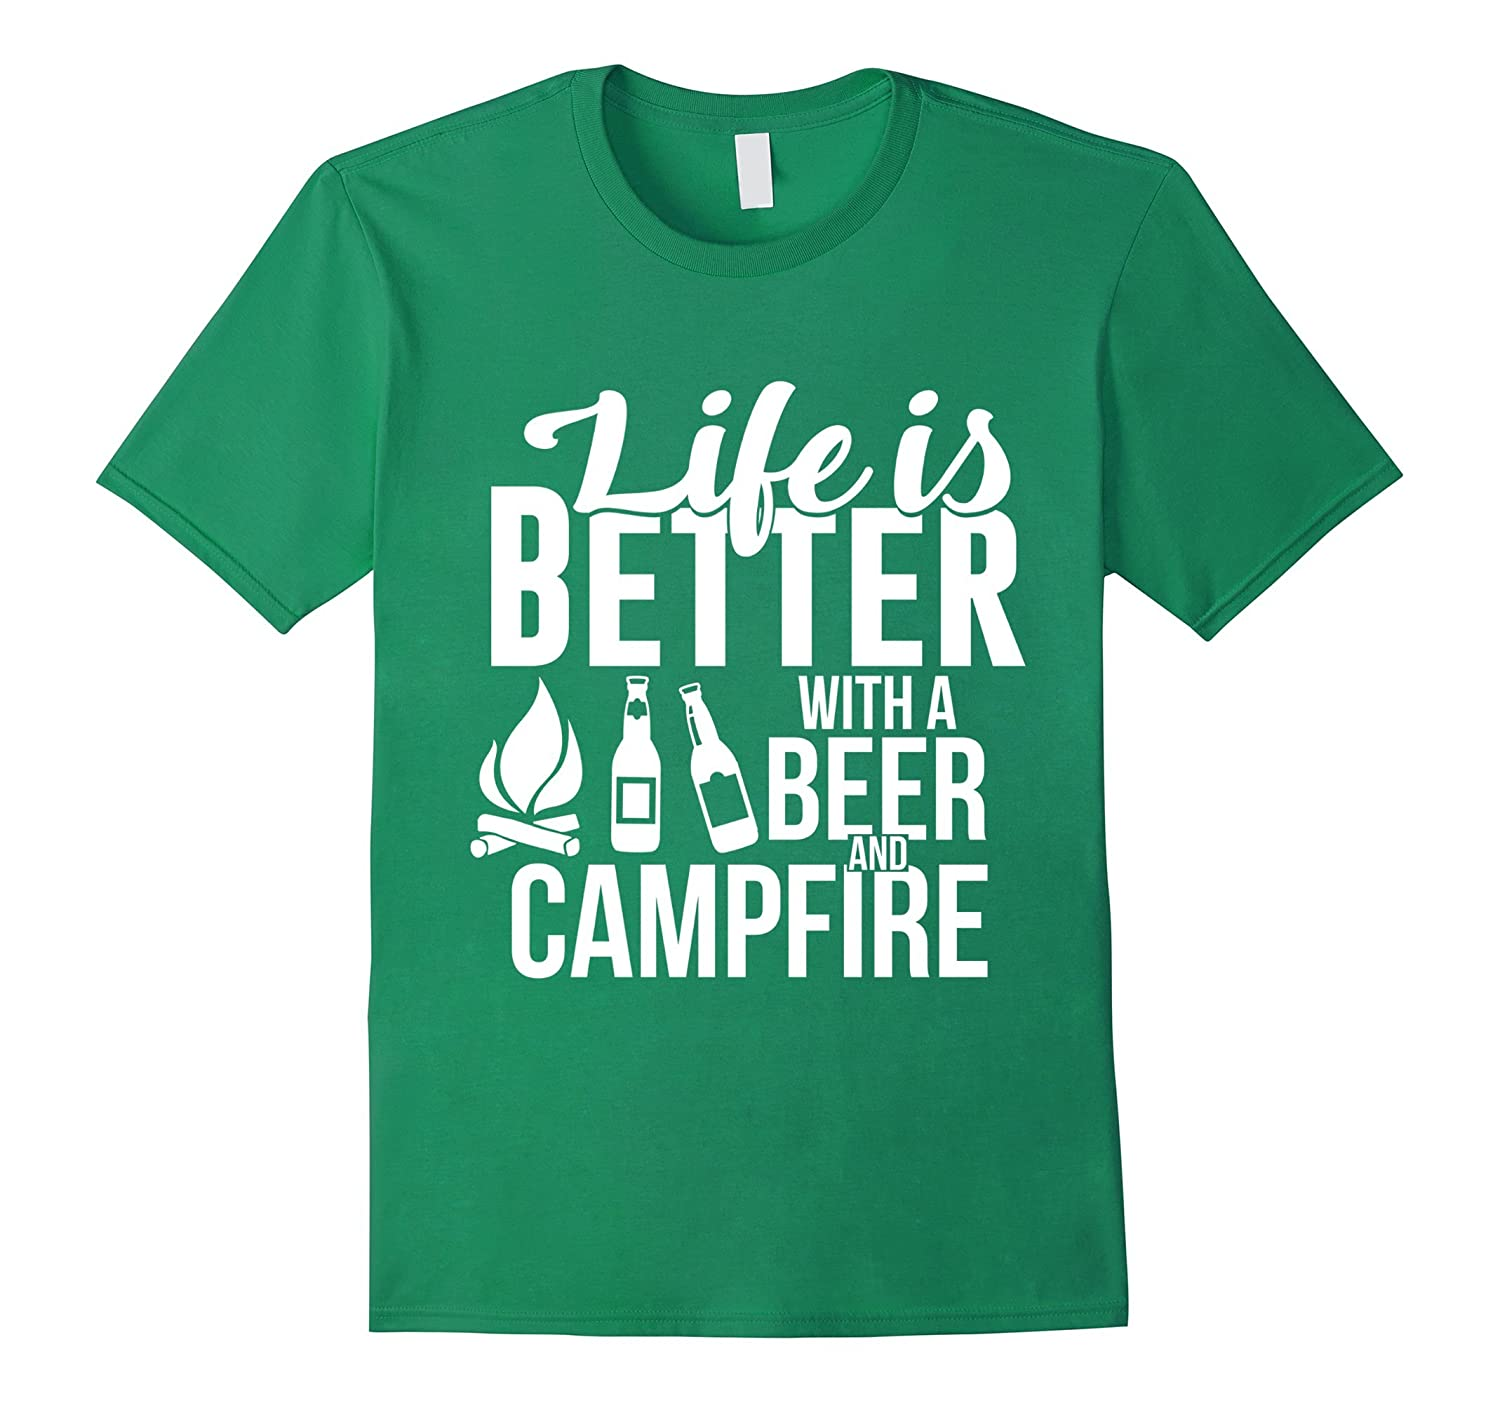 982c6d35 Funny Camping Tshirt Life is Better with a Beer and Campfire-anz ...